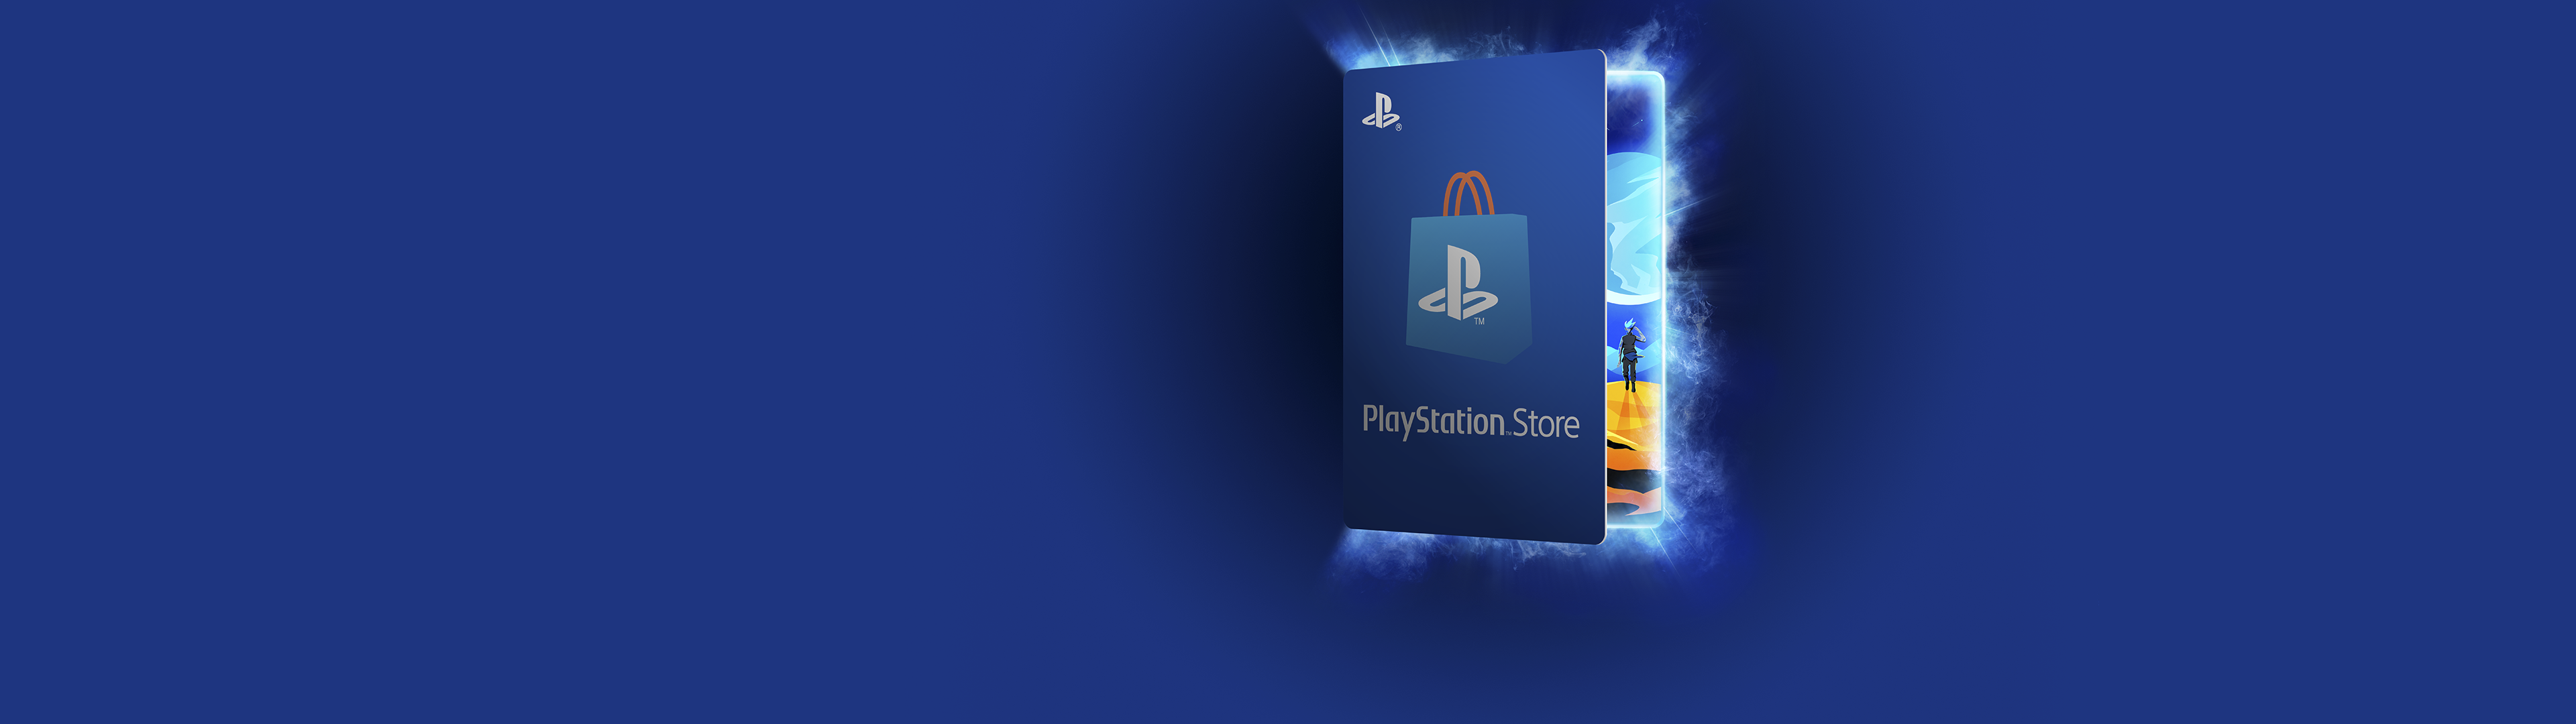 Cartes cadeau PlayStation